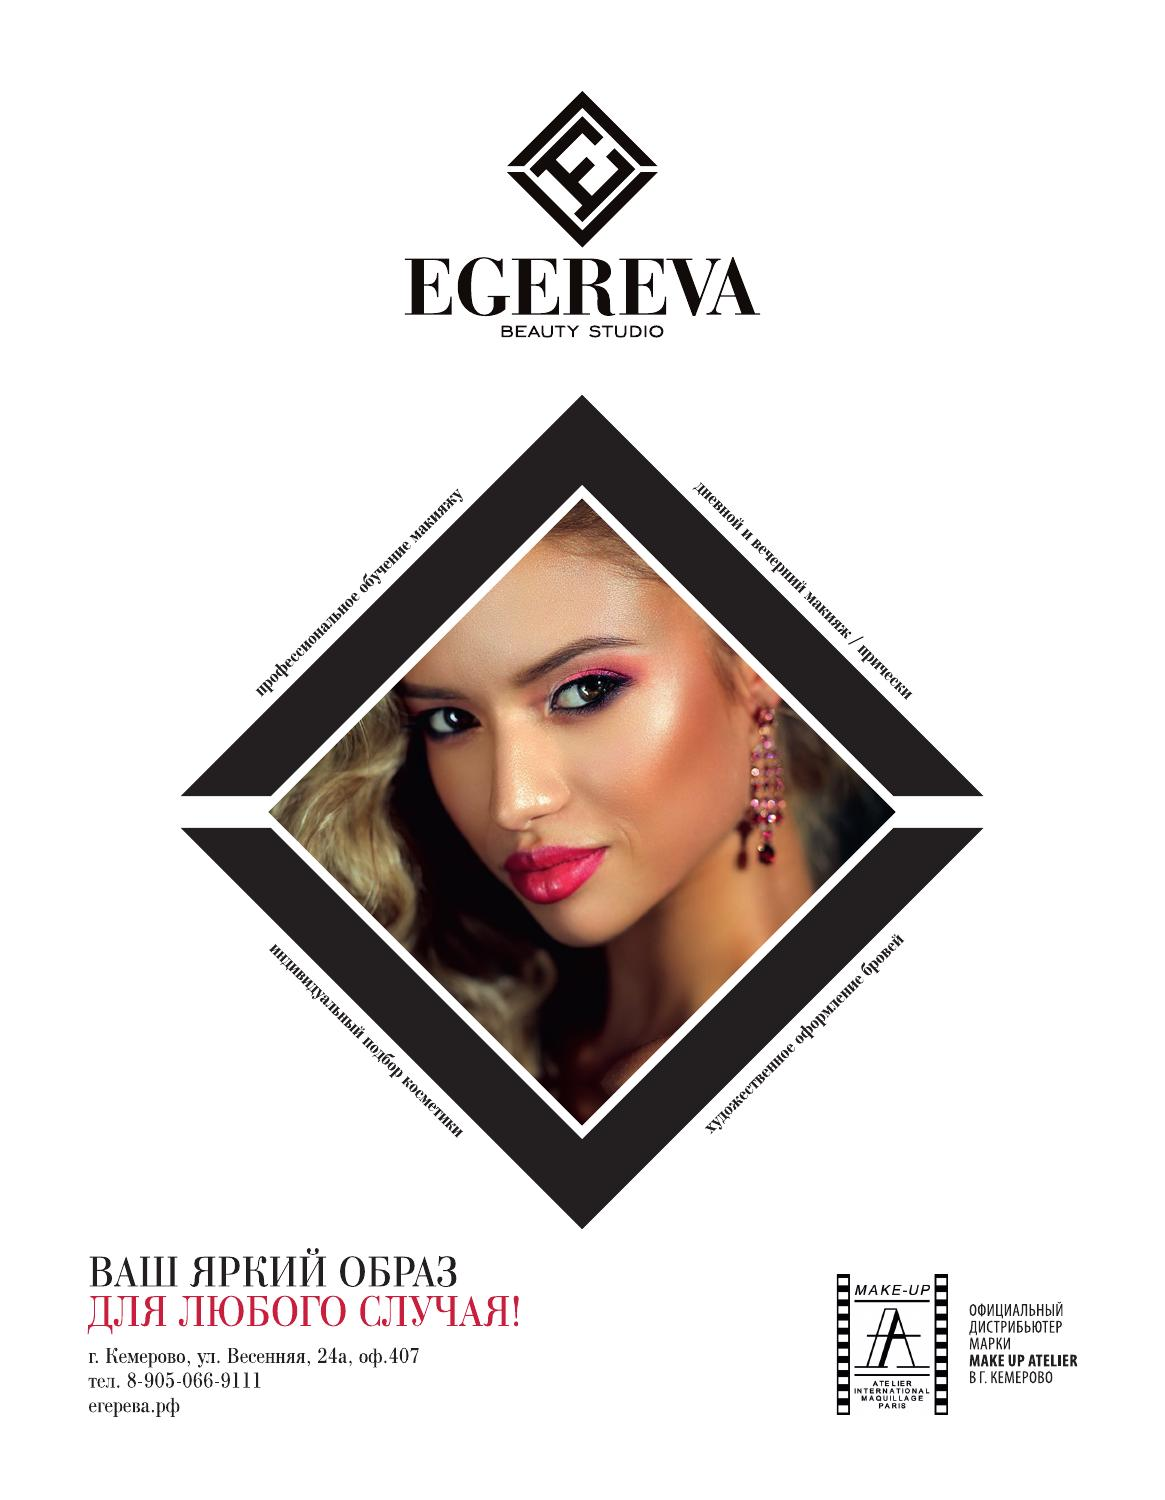 EGEREVA BEAUTY STUDIO